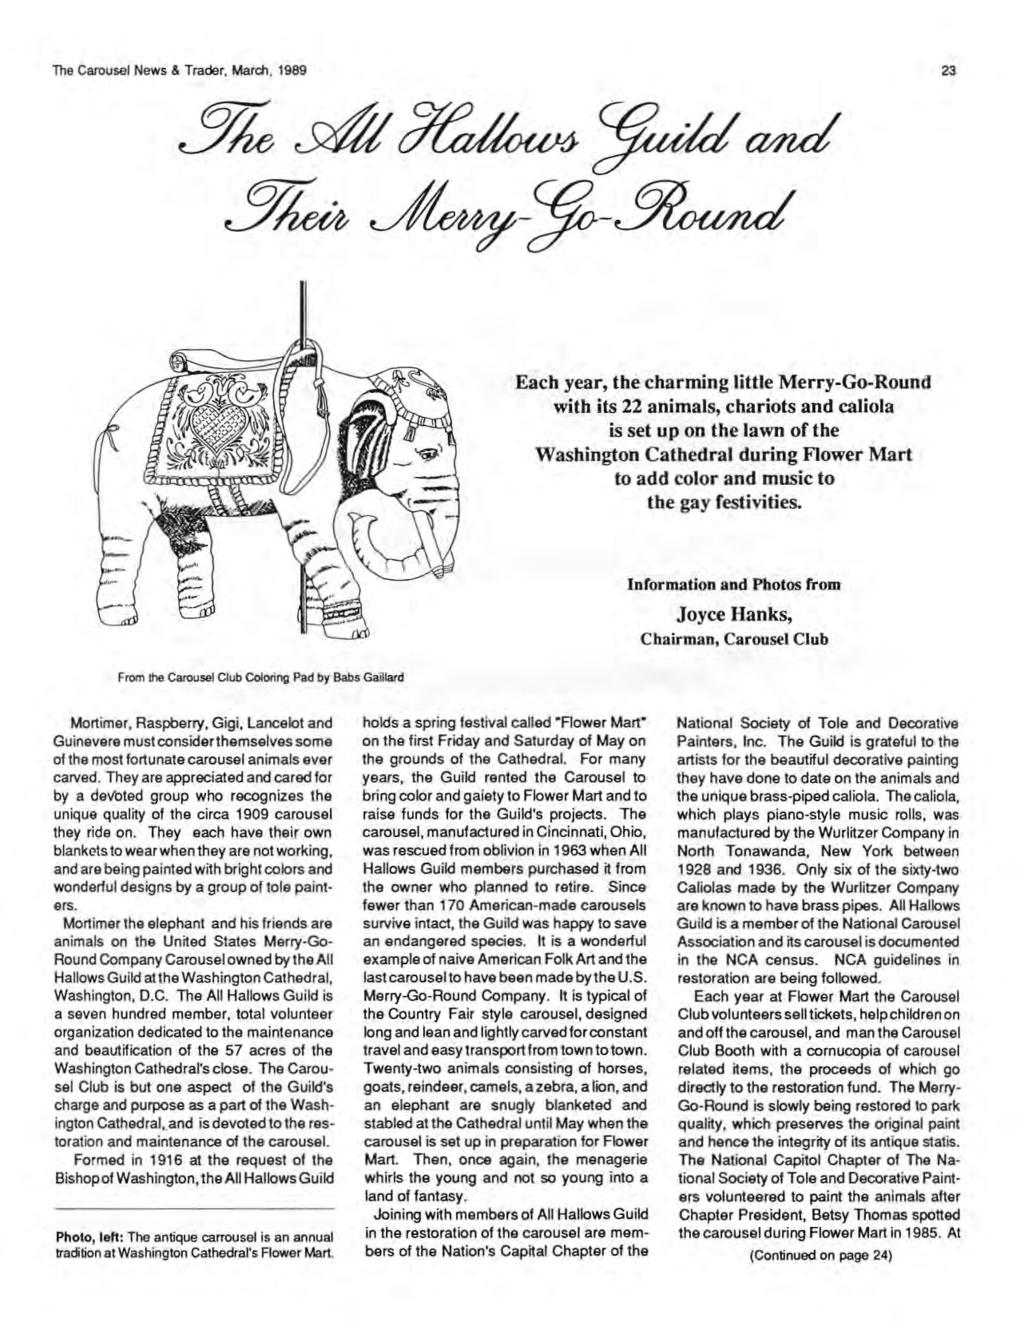 The Carousel News & Trader, March, 1989 23 3k~~ wnd 3ku ~-~ Each year, the charming little Merry-Go-Round with its 22 animals, chariots and caliola is set up on the lawn of the Washington Cathedral